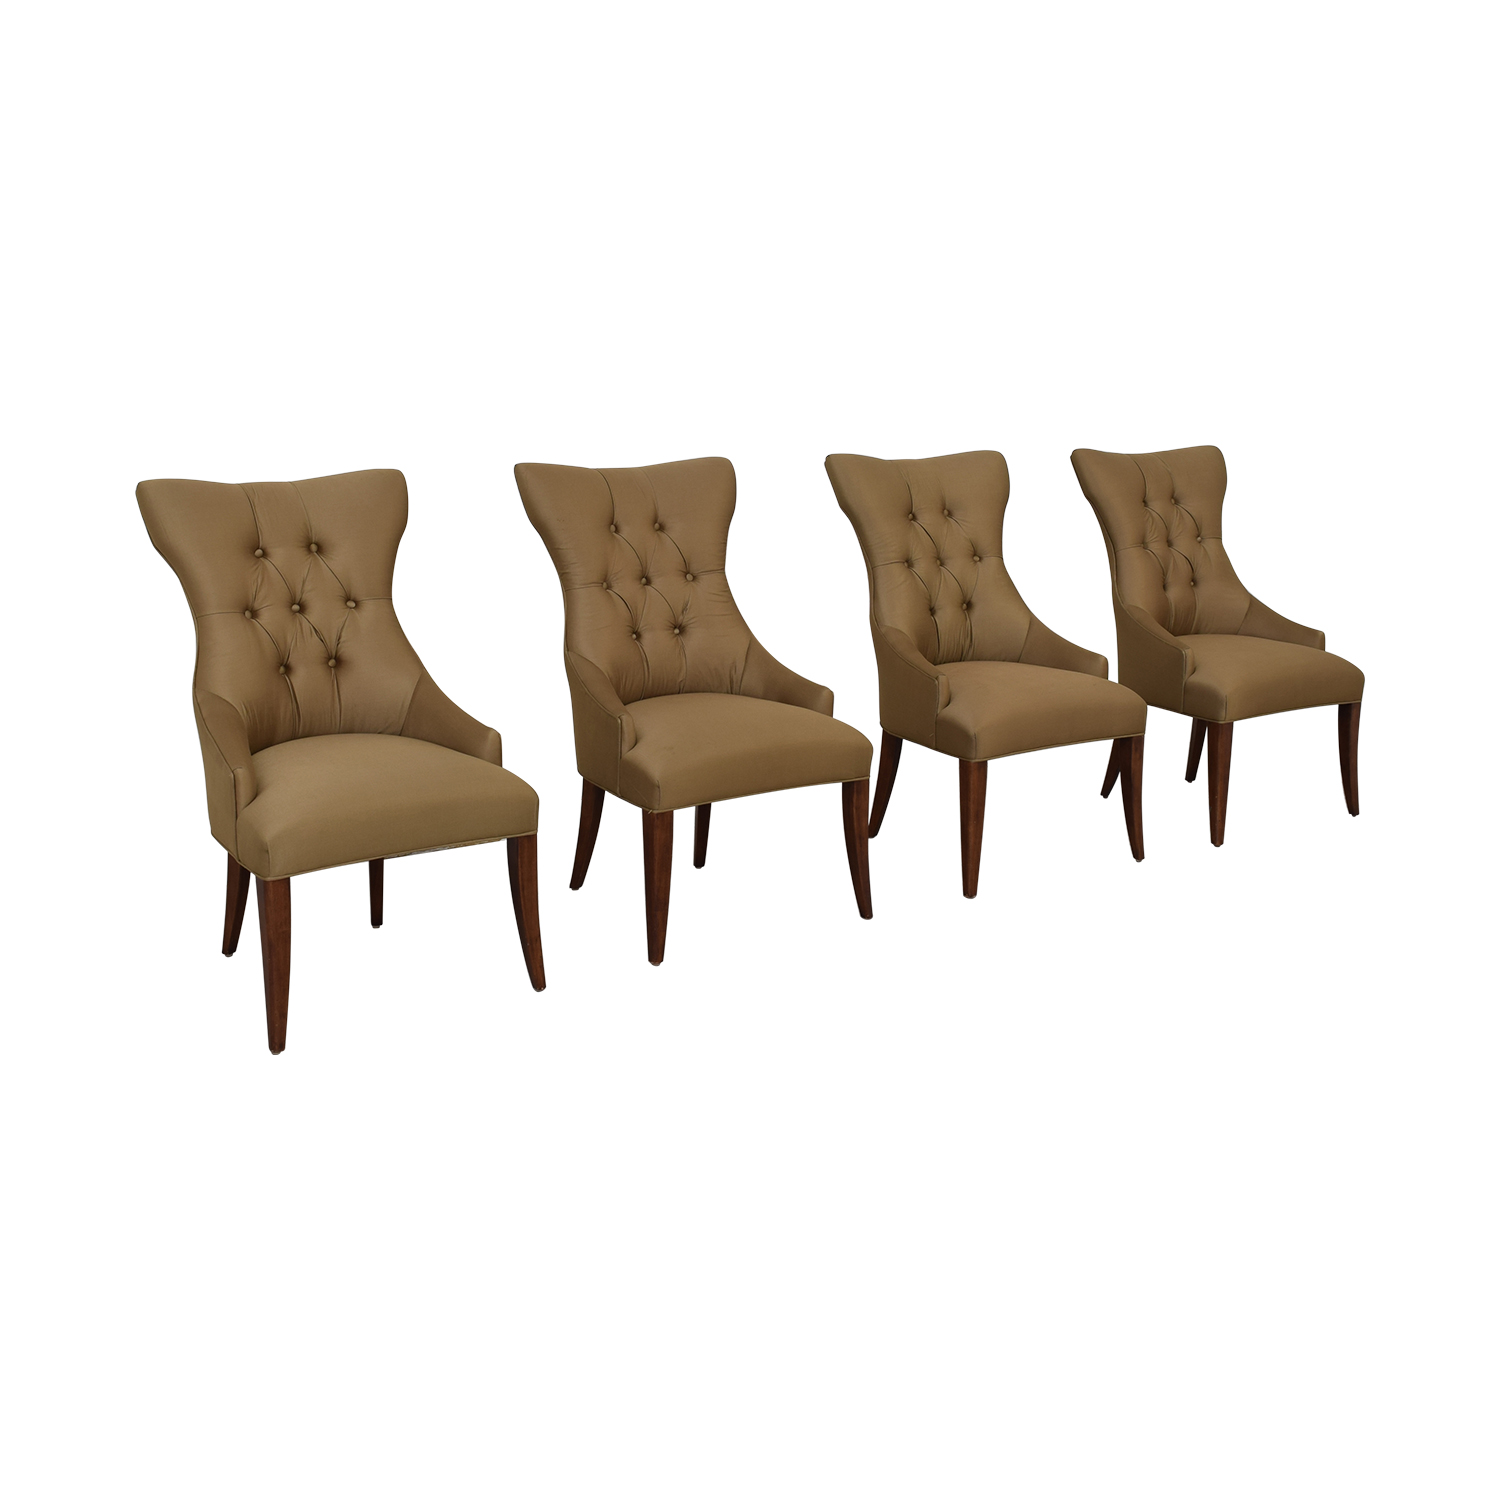 Bernhardt Gray Deco Dining Chairs sale